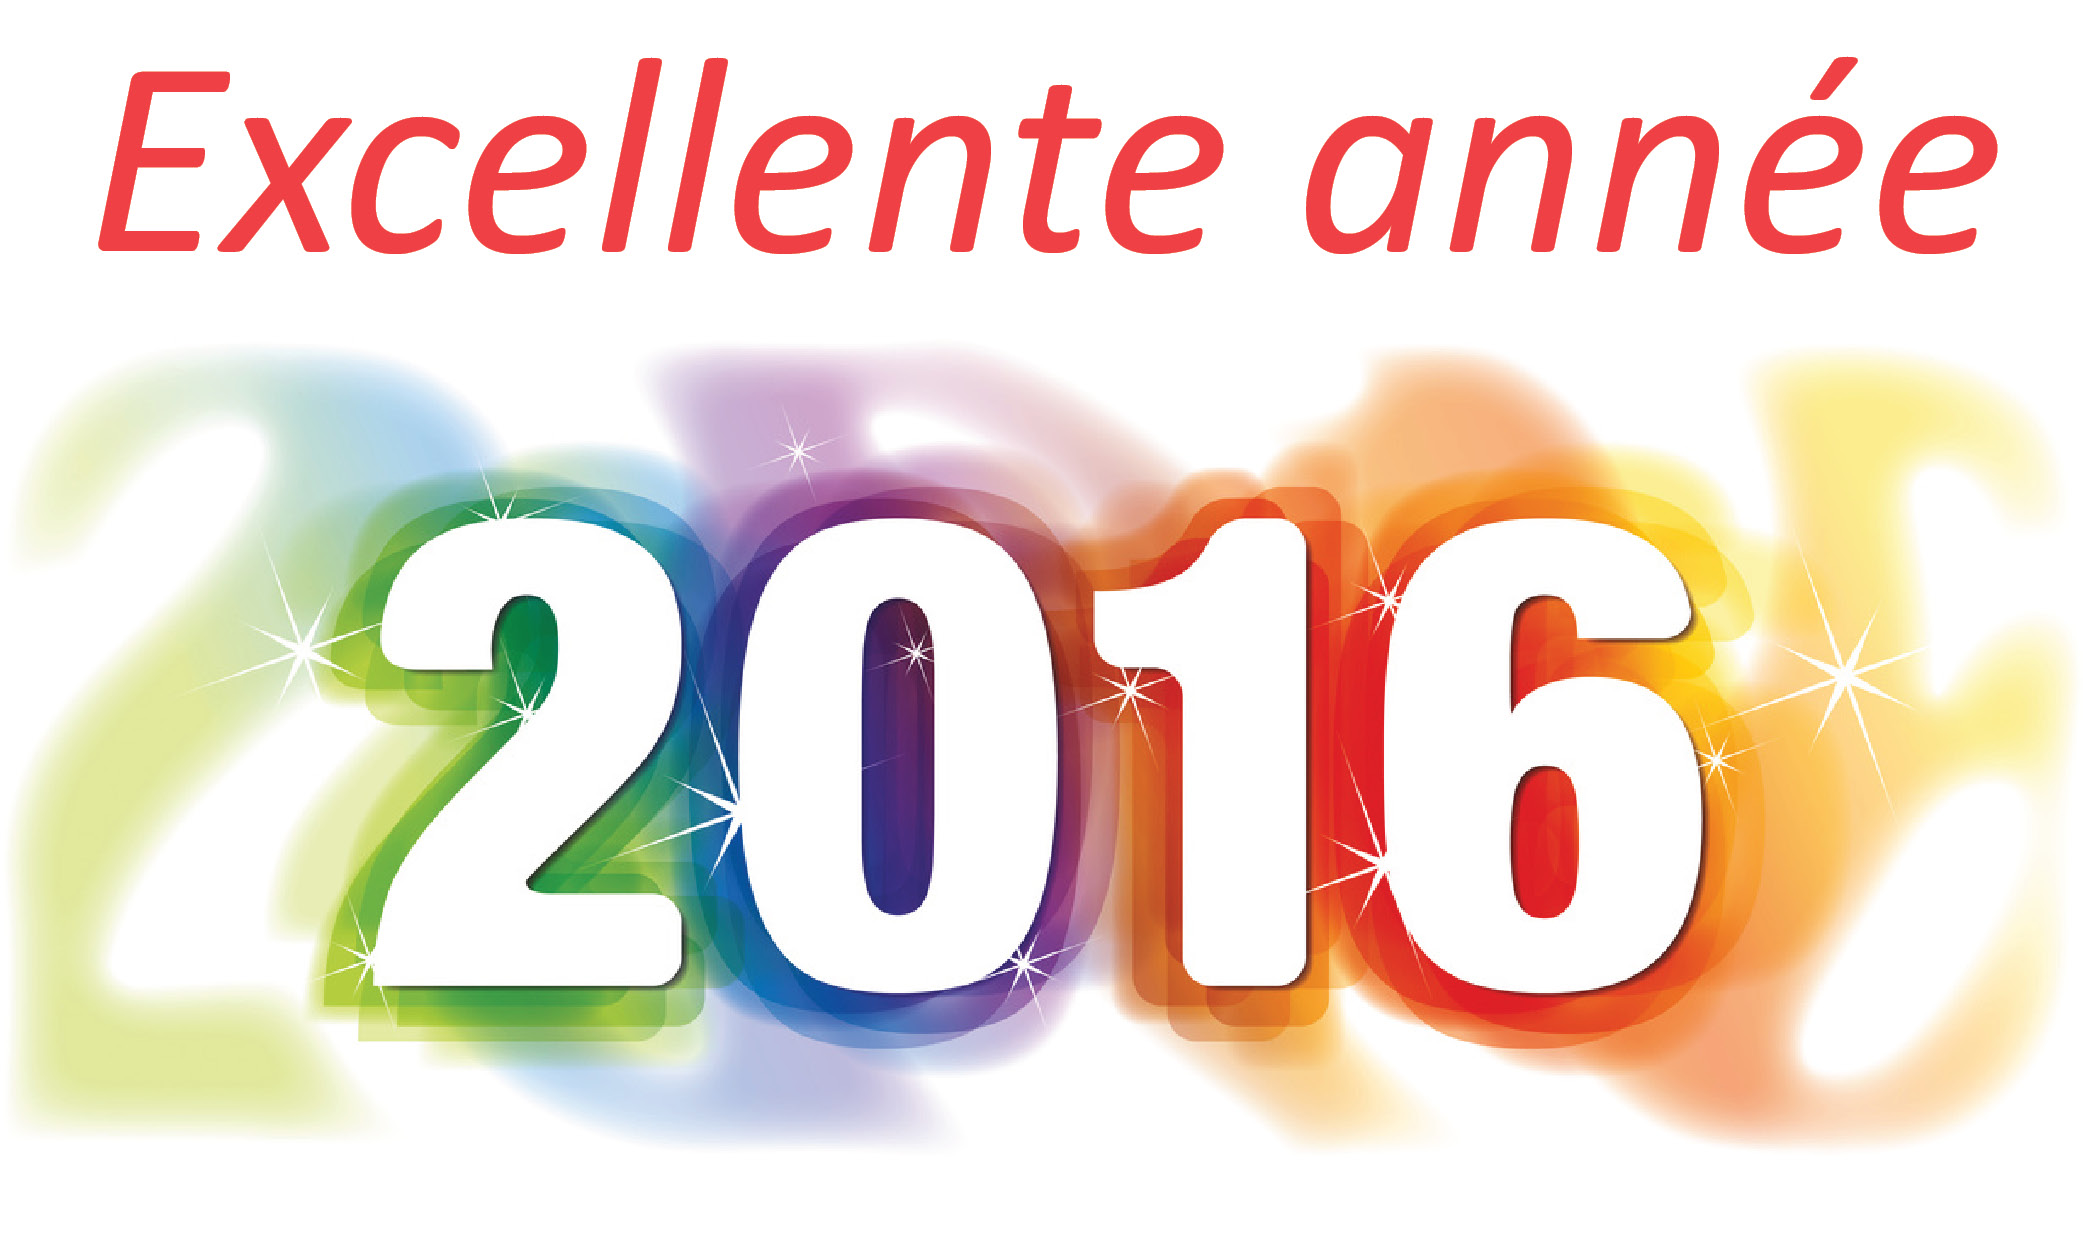 SQL Data Consulting - Excellente Année 2016